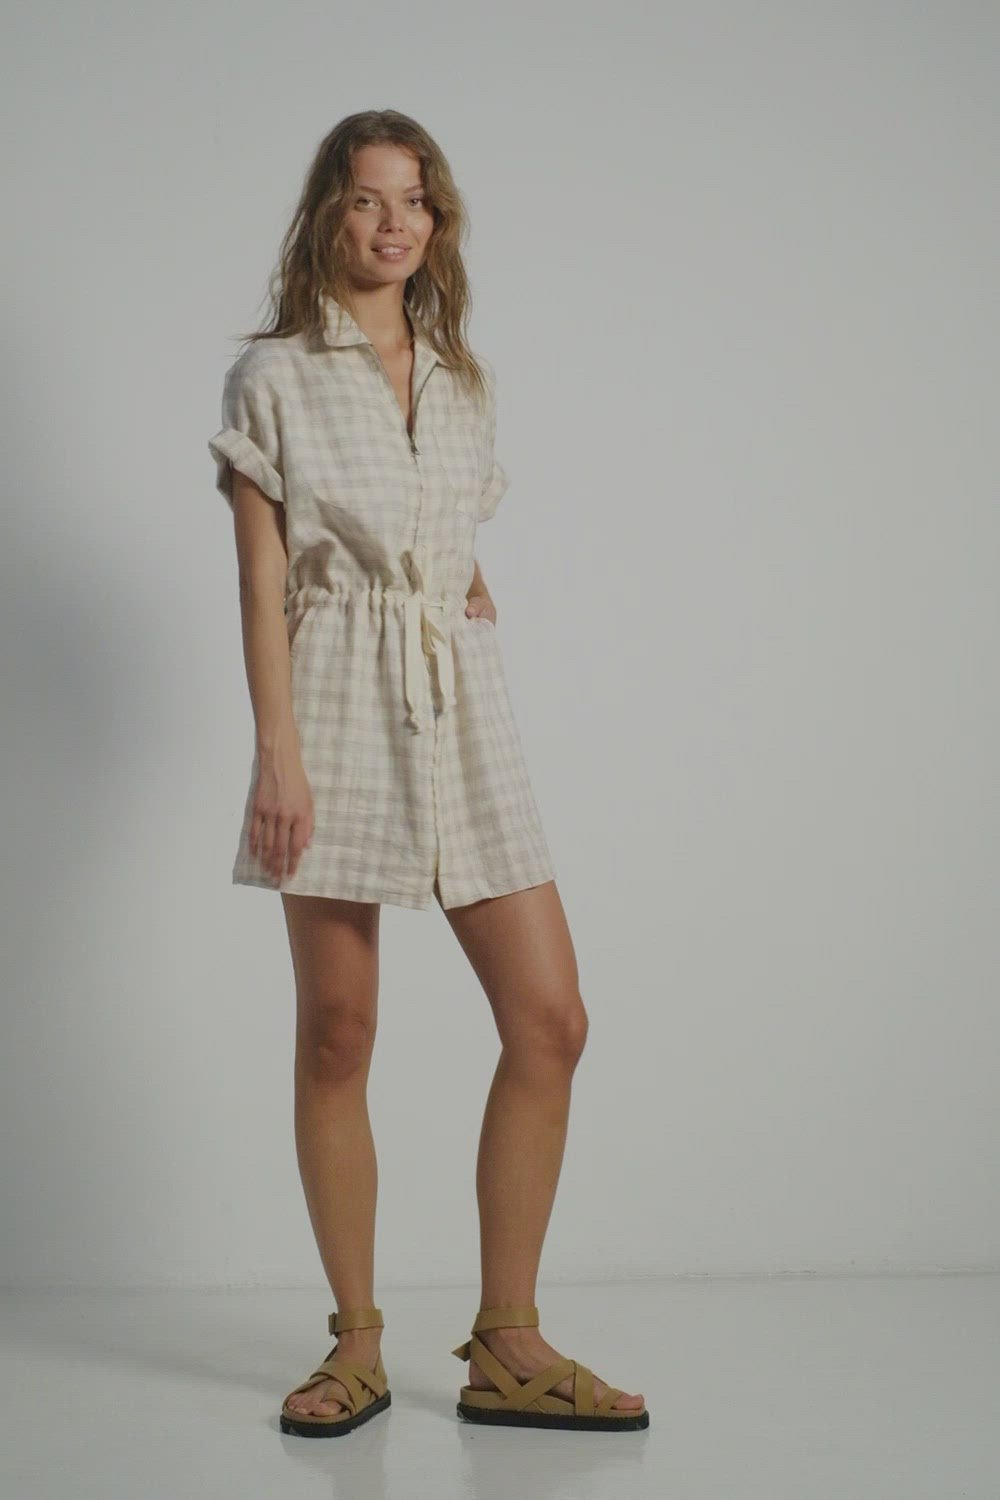 A woman in a check linen dress for summer by Lilya